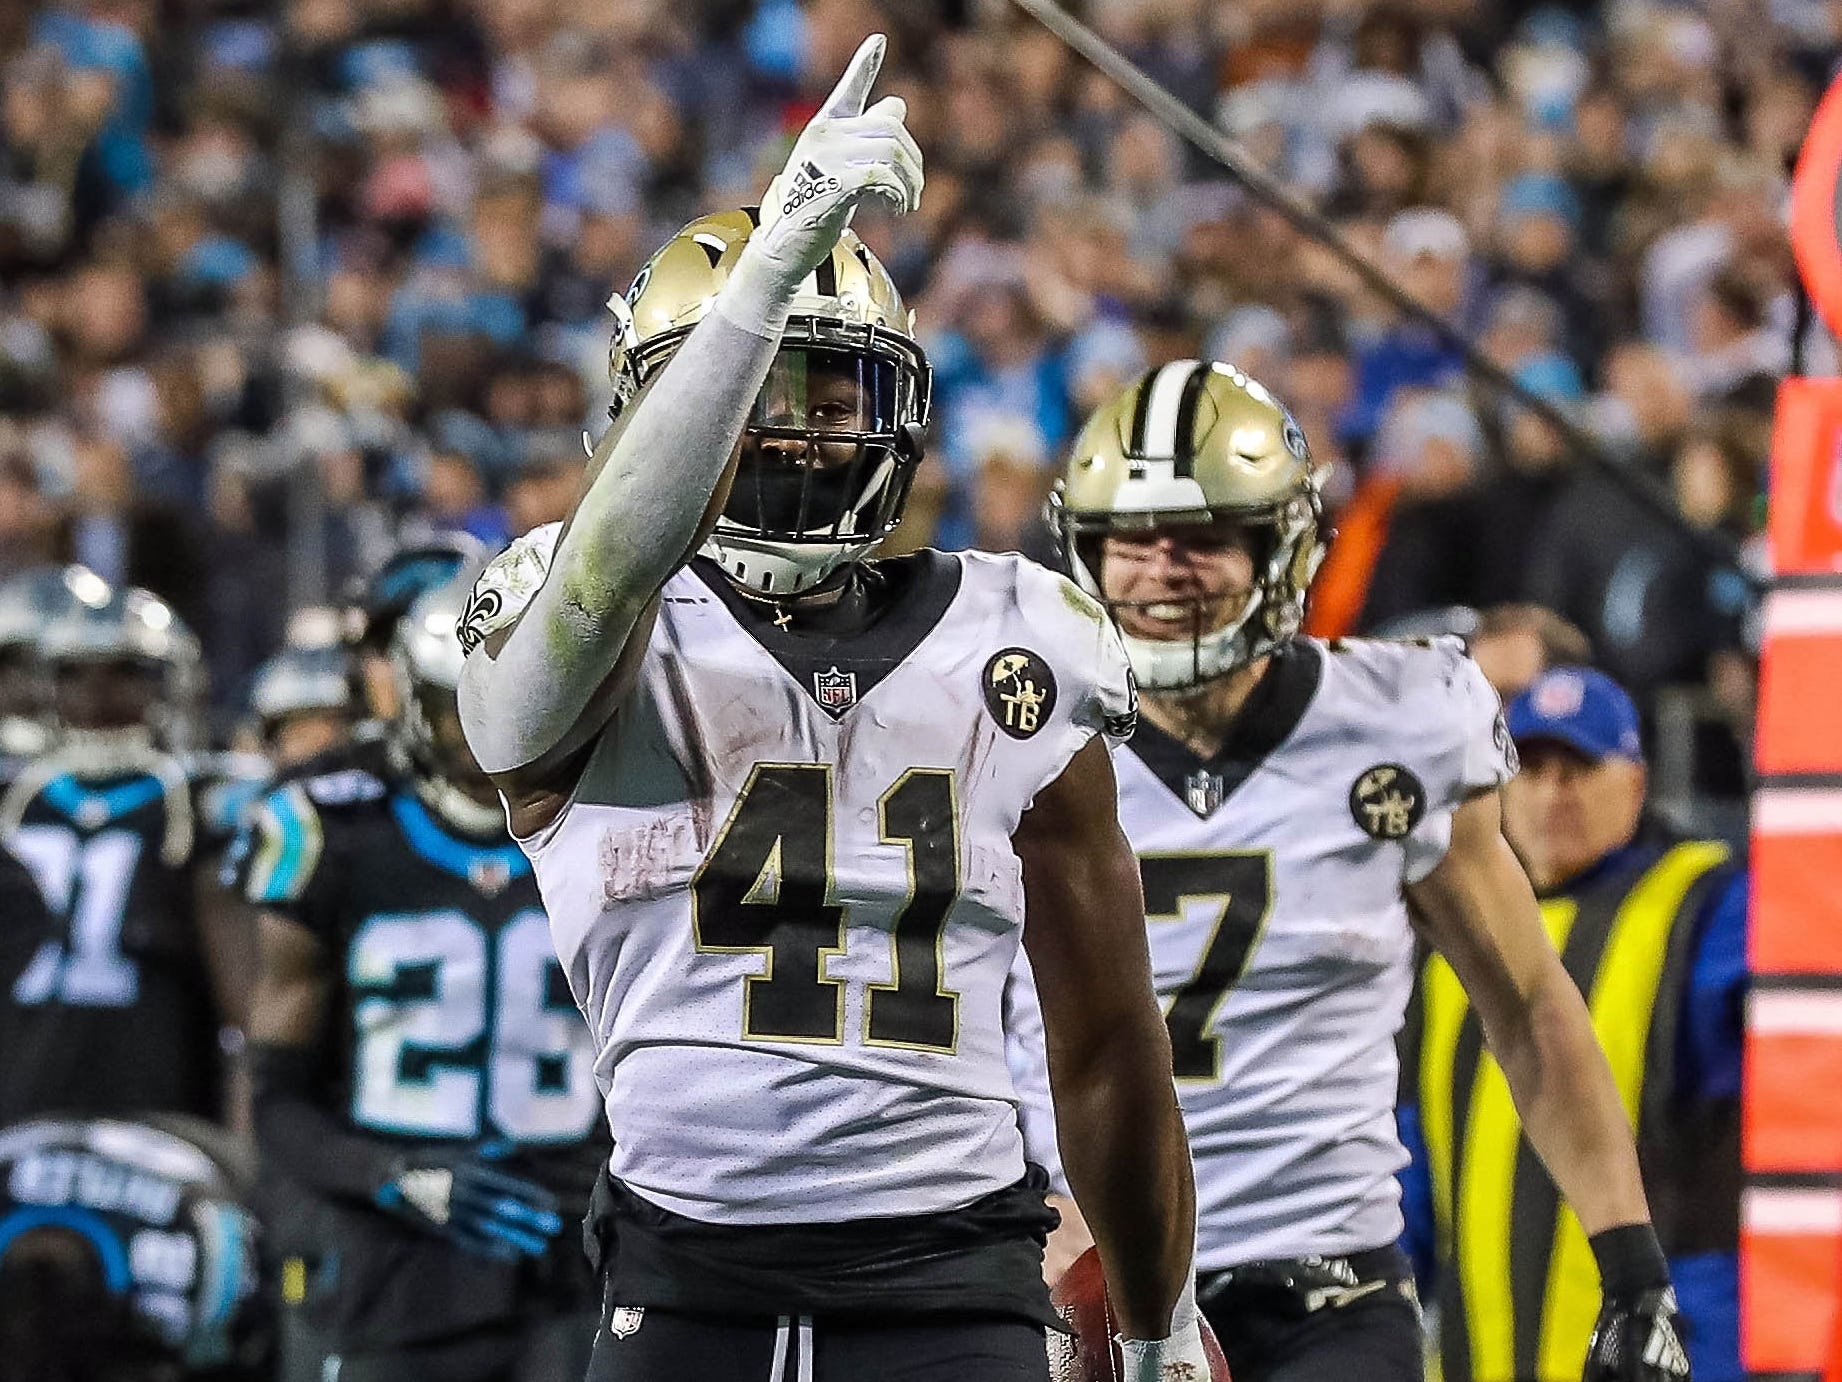 New Orleans Saints running back Alvin Kamara reacts to his first down run against the Carolina Panthers during the second half at Bank of America Stadium.